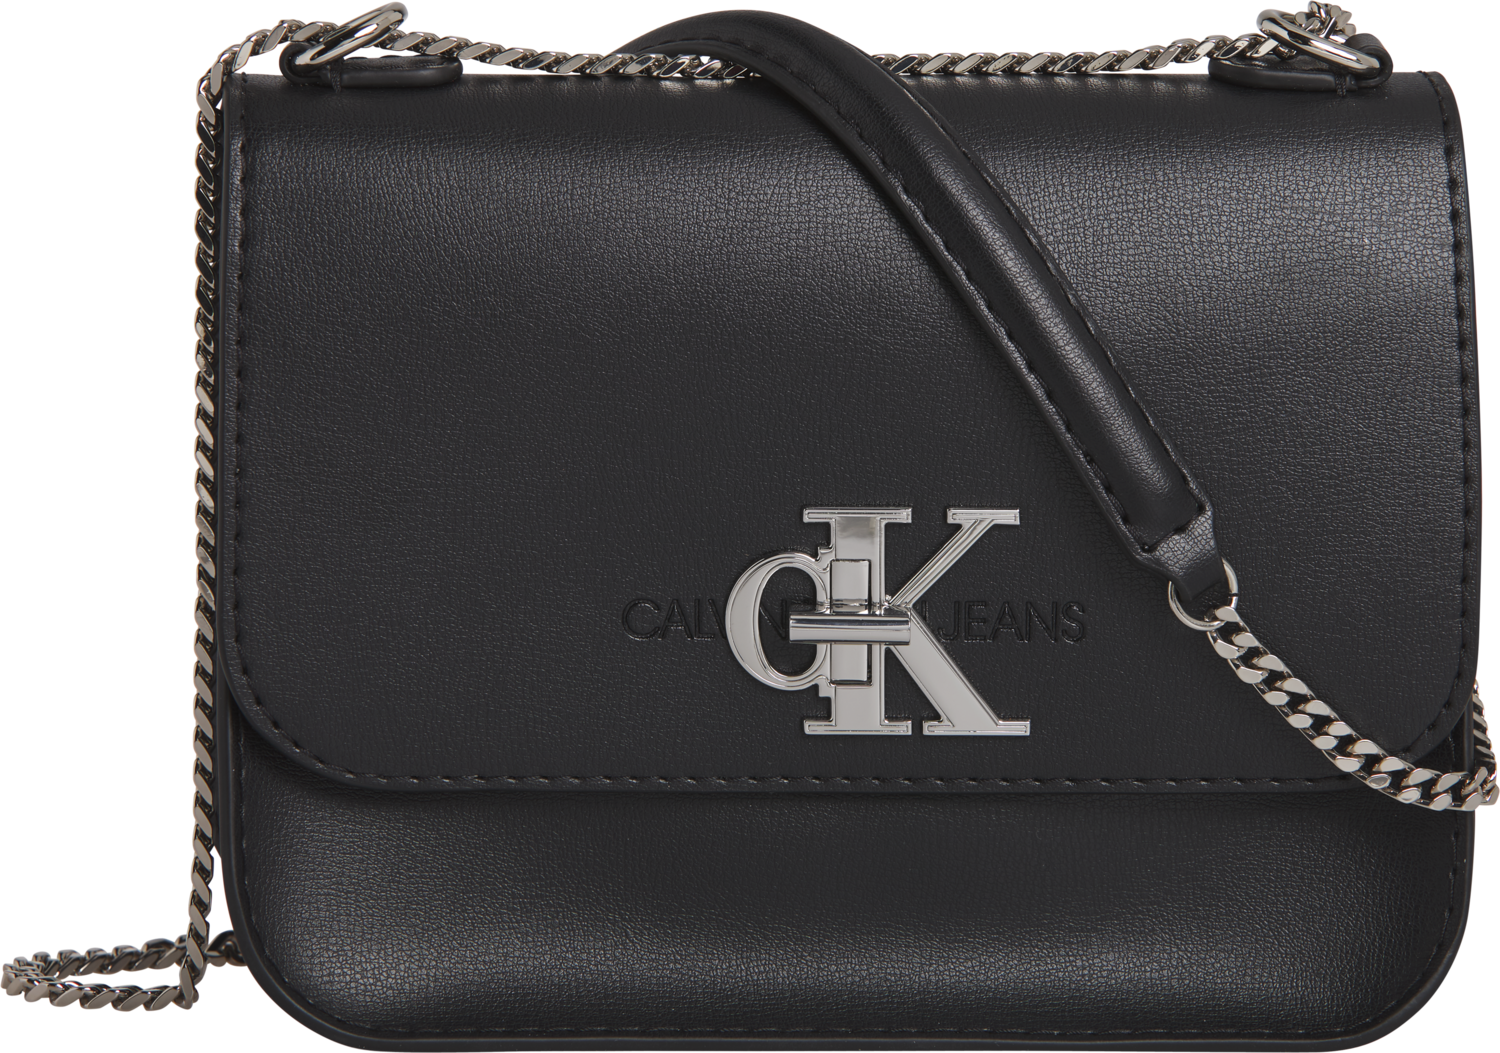 CALVIN KLEIN CONVERTIBLE SHOULDER BAG